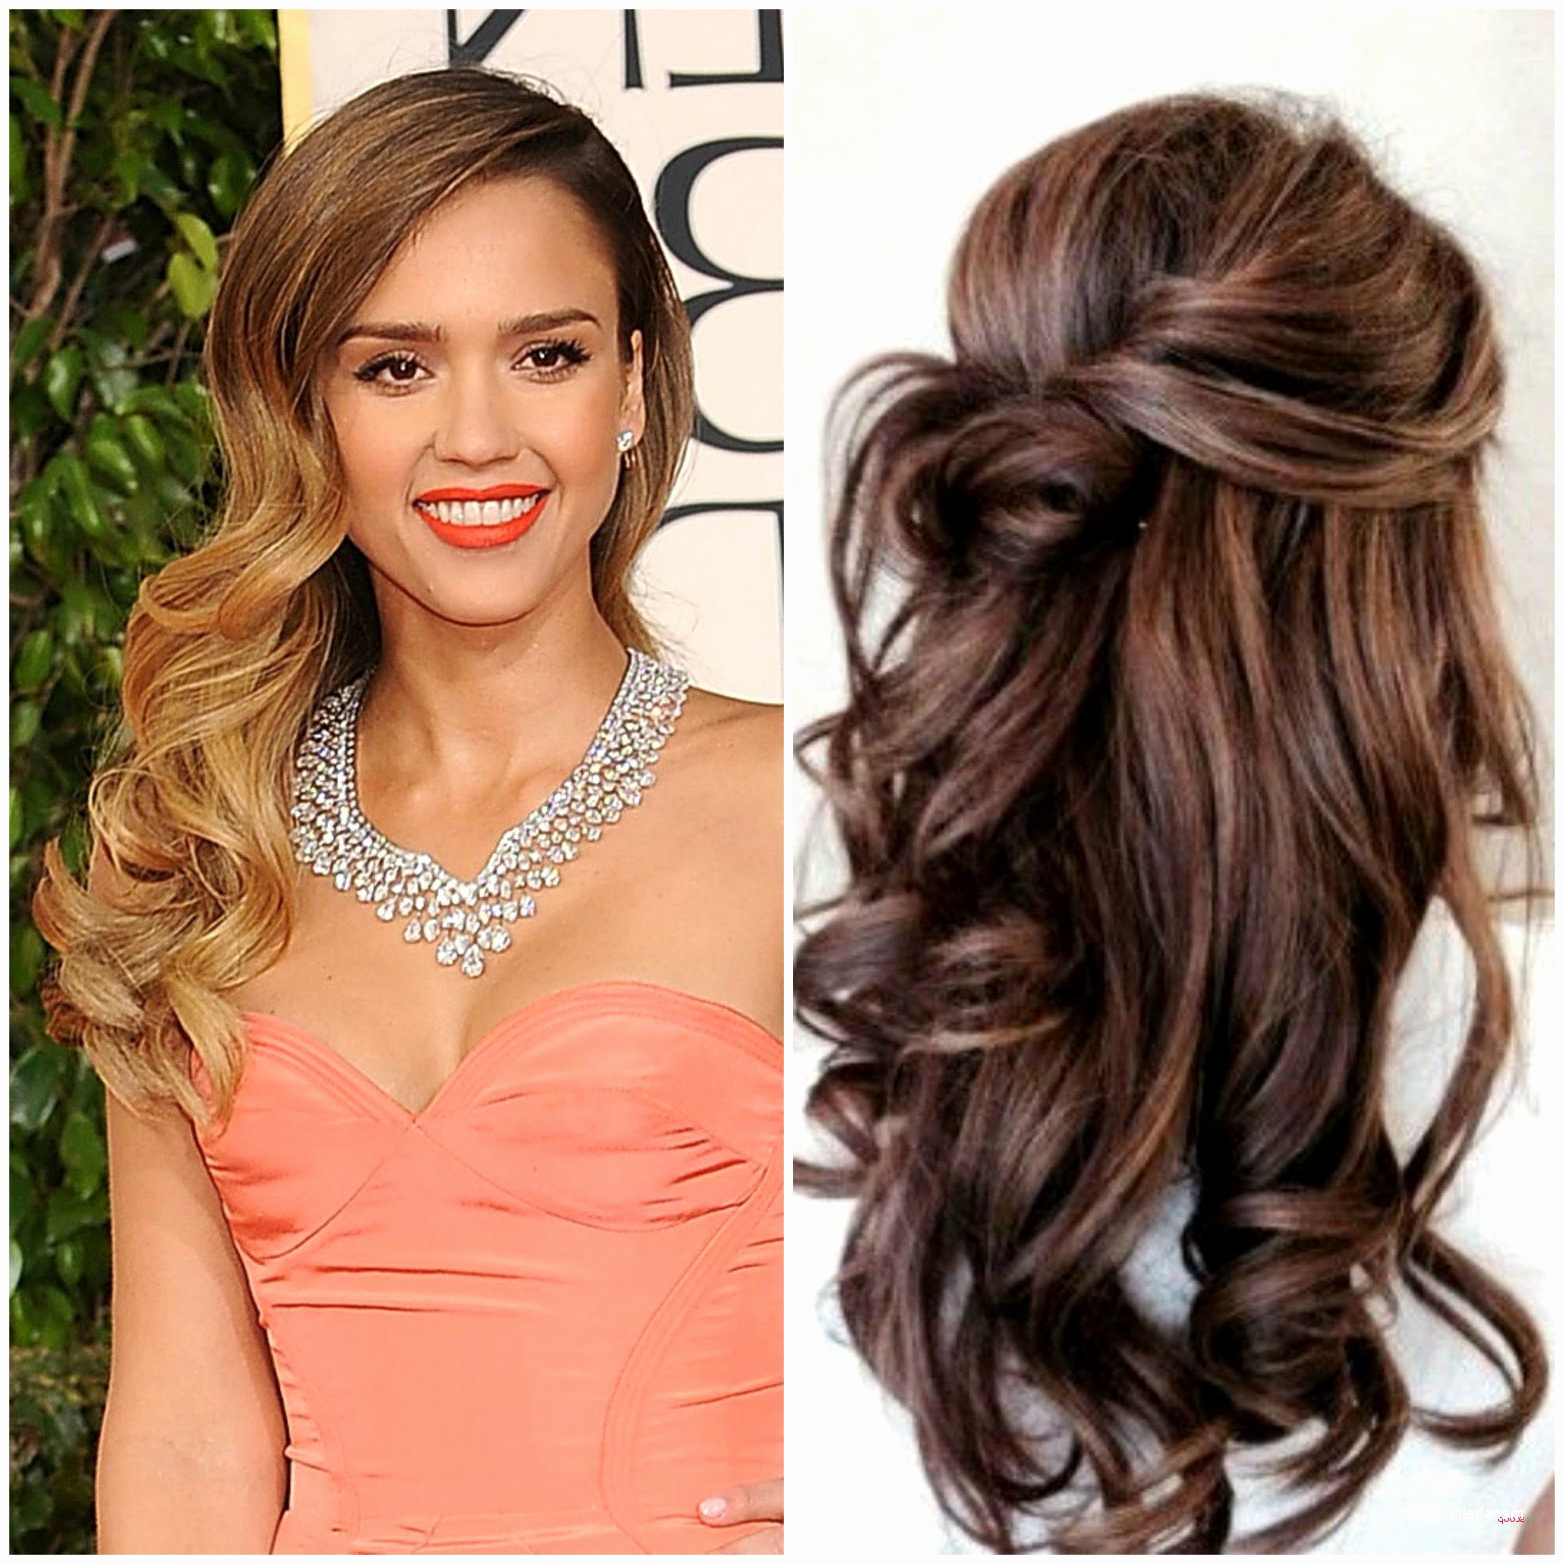 Hairstyle For Round Chubby Face Women Fresh 35 Best Short Hairstyles In Short Hair For Round Chubby Face (View 22 of 25)